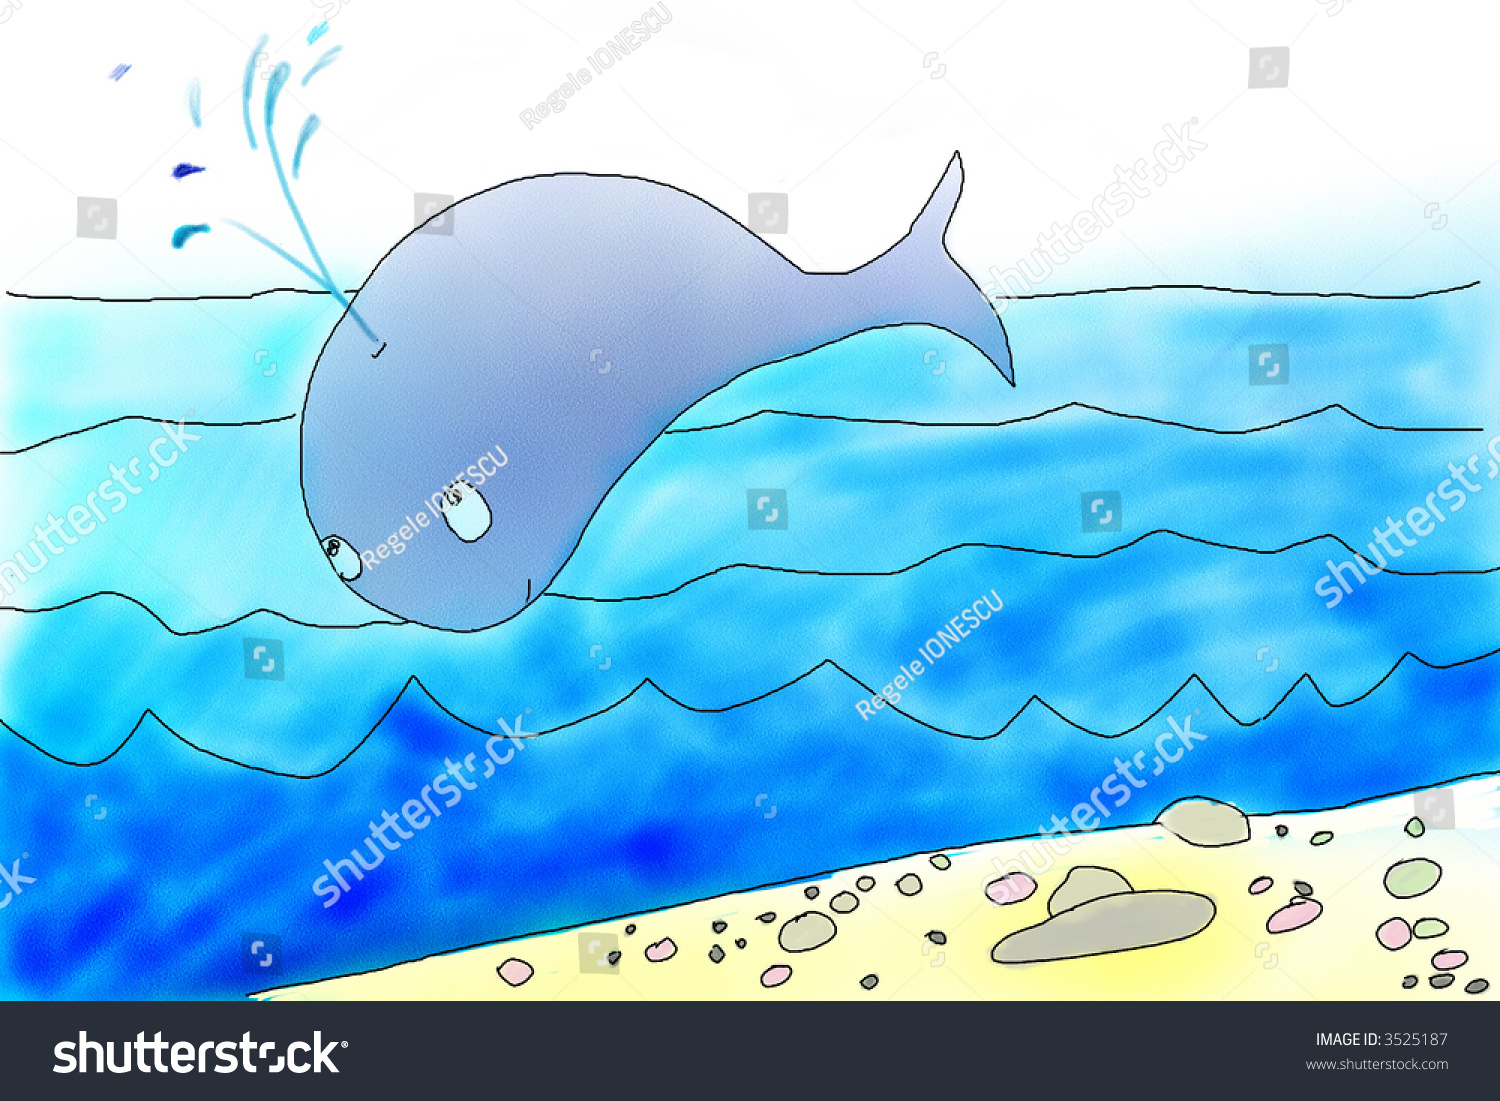 Cute whale in water cartoon isolated illustration stock photography - Blue Whale Jumps Over The Ocean Cetus Jump Hand Drawing Illustration